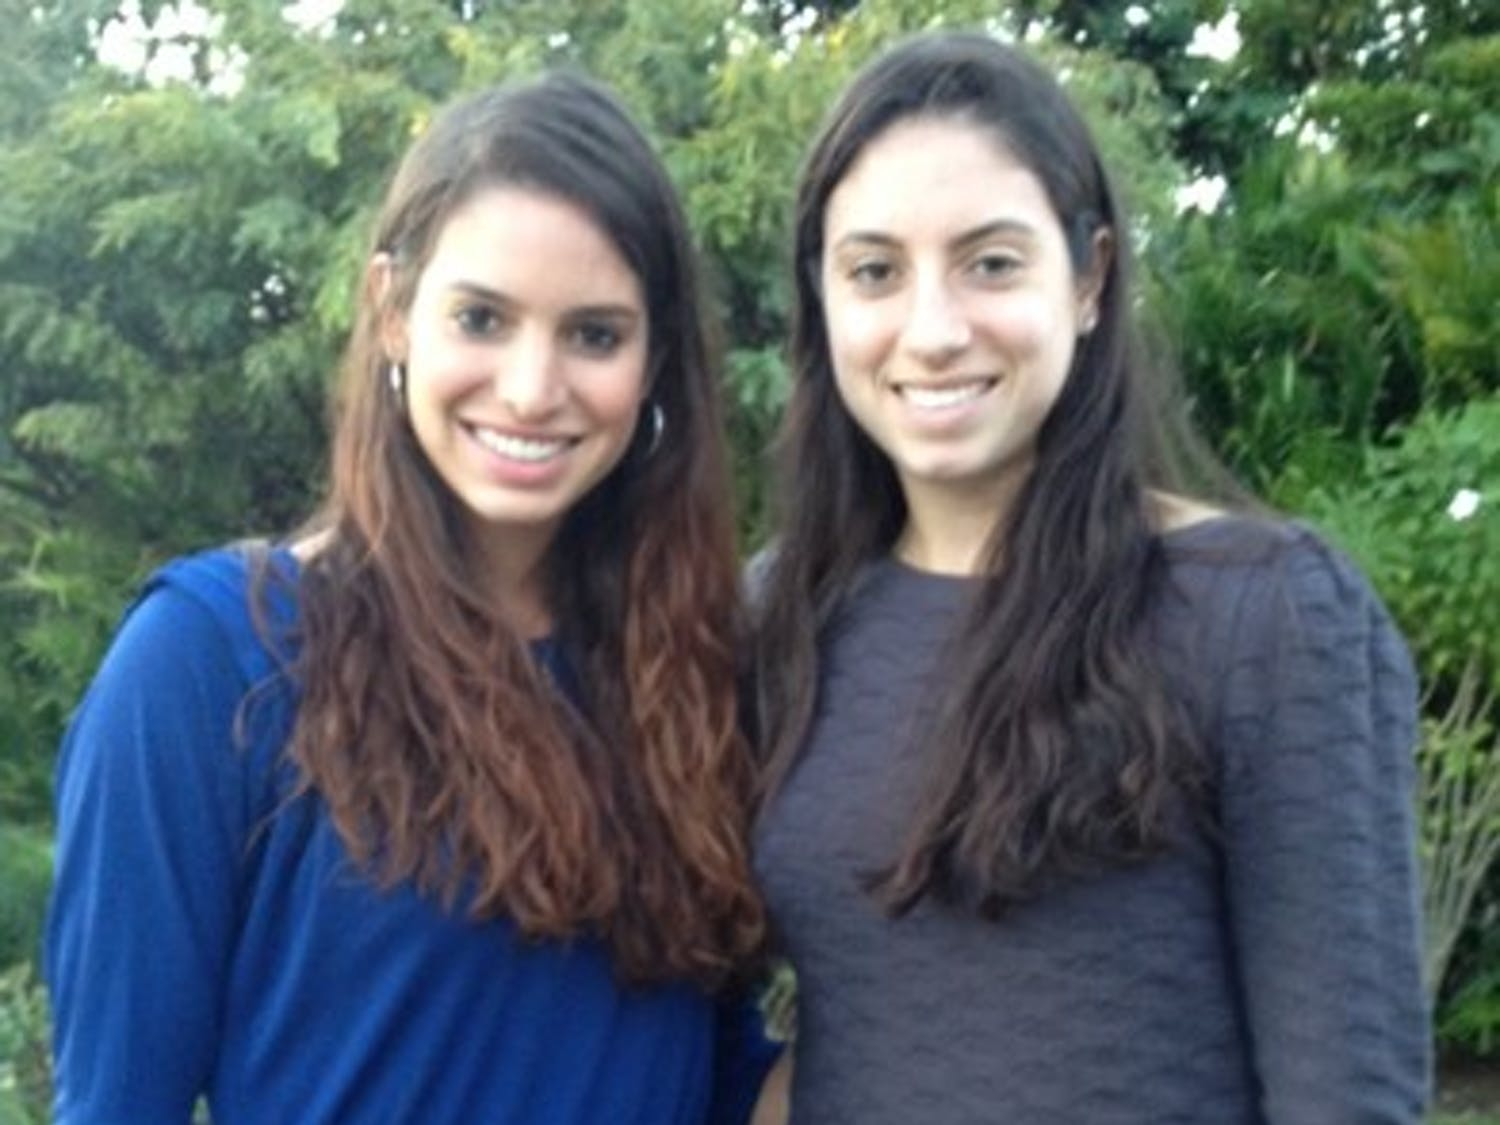 Sisters Lauren and Christina McHale have played tennis since learning to play in 1995